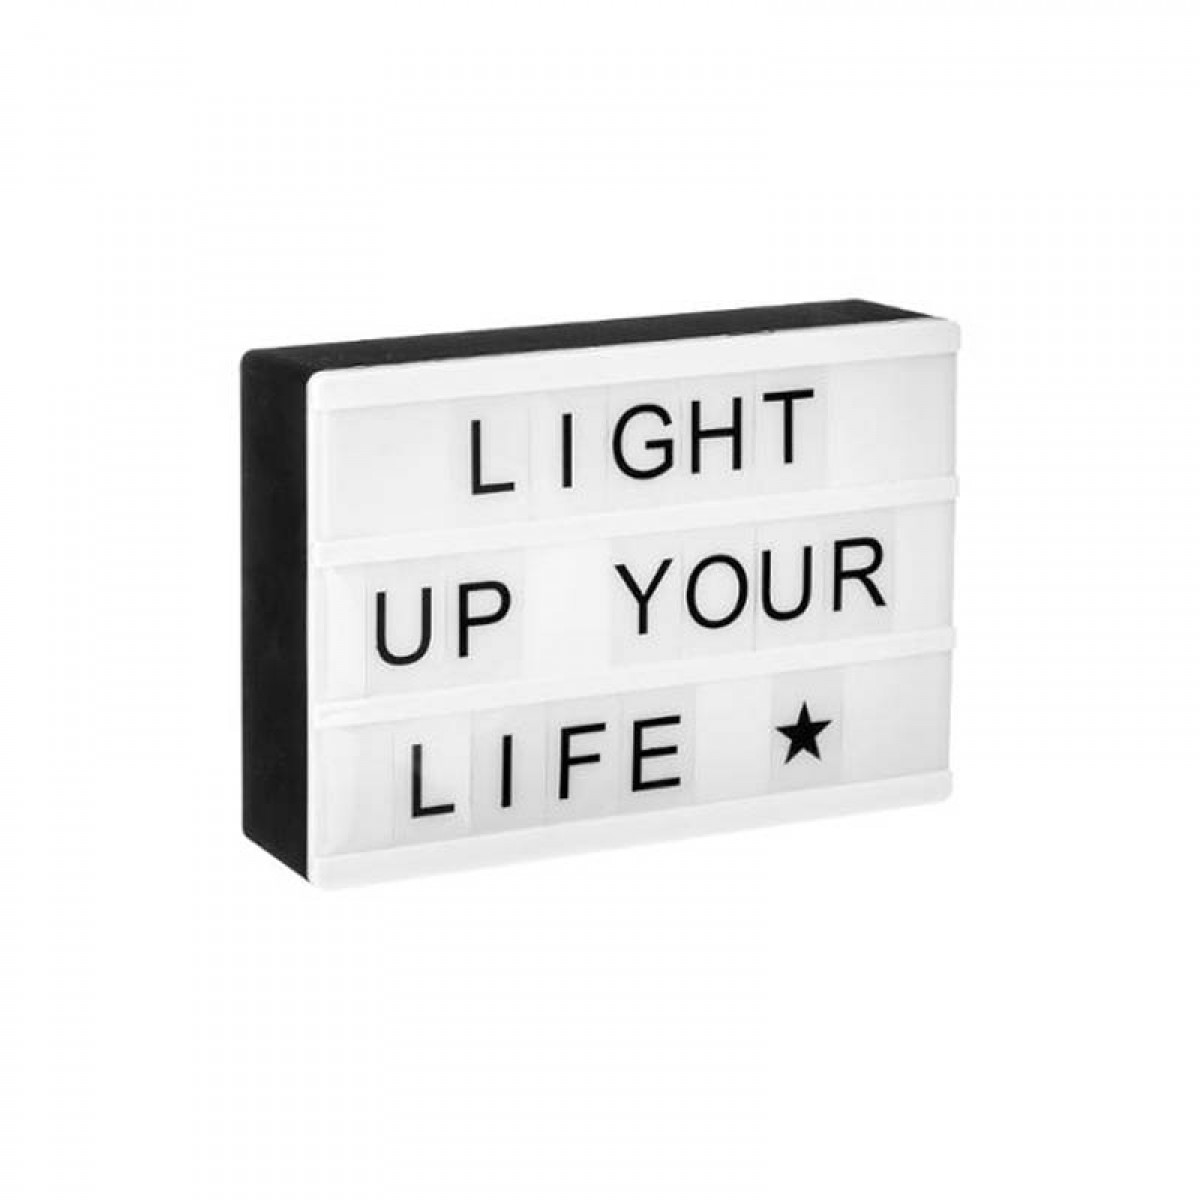 bo te led lumineuse messages magn tique les douces nuits de ma linge de maison. Black Bedroom Furniture Sets. Home Design Ideas